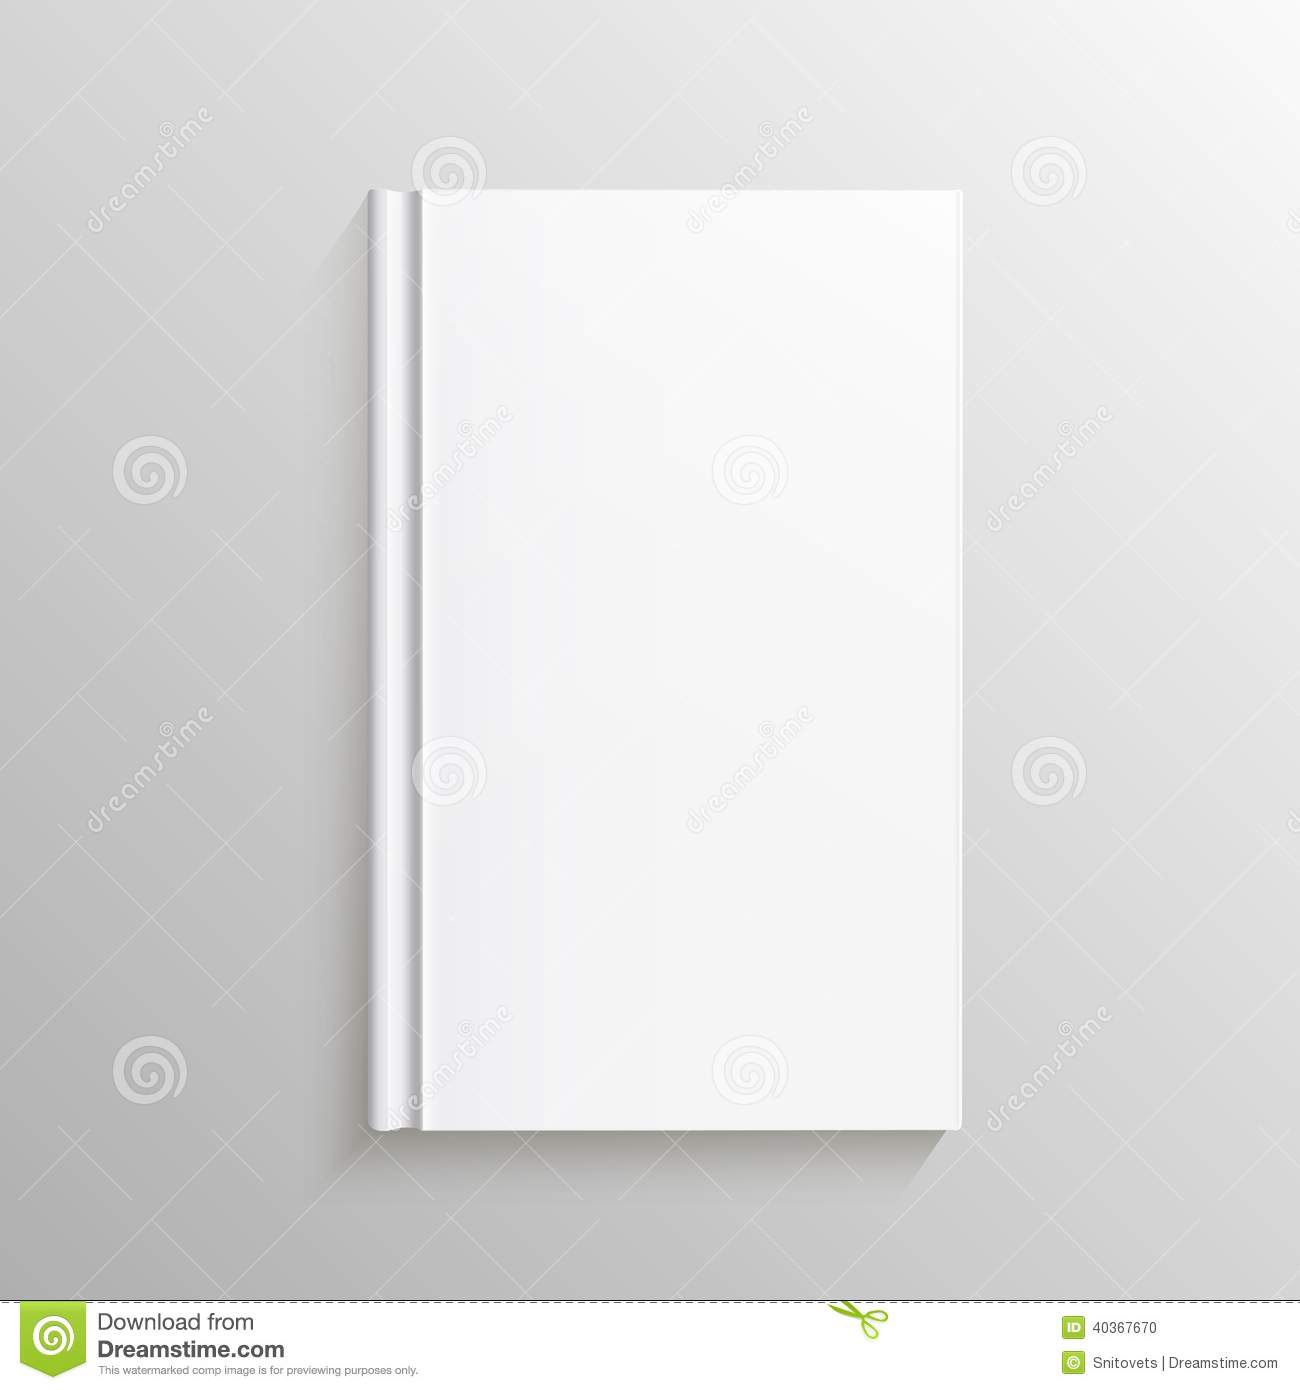 Book Cover Design Blank : Blank book cover gradient mesh isolated object for